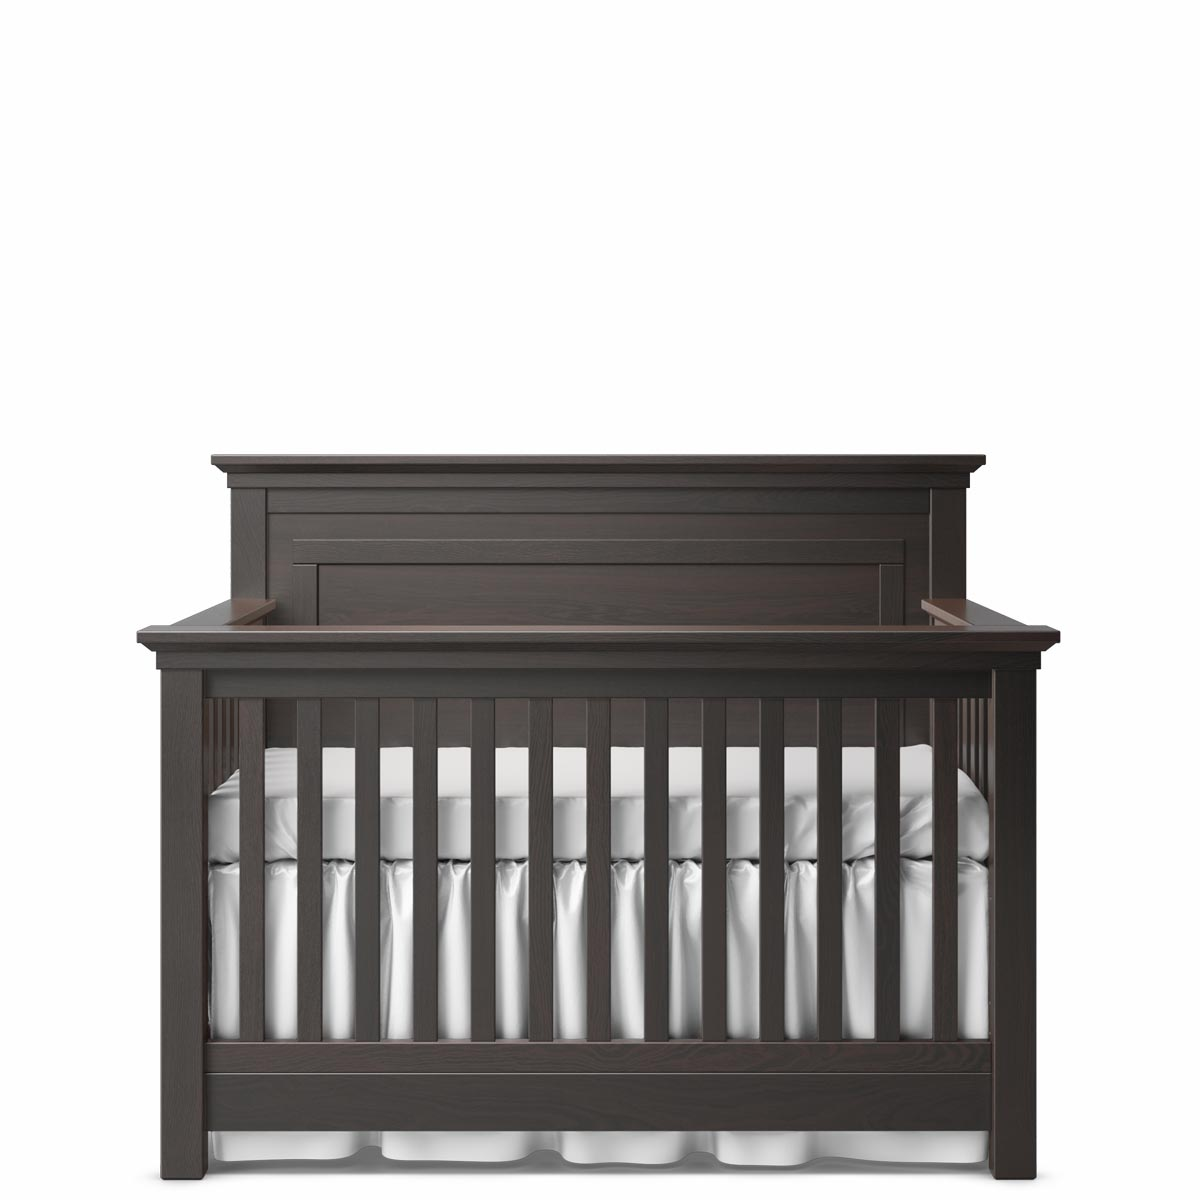 Romina Furniture Karisma Panel Crib - Espresso